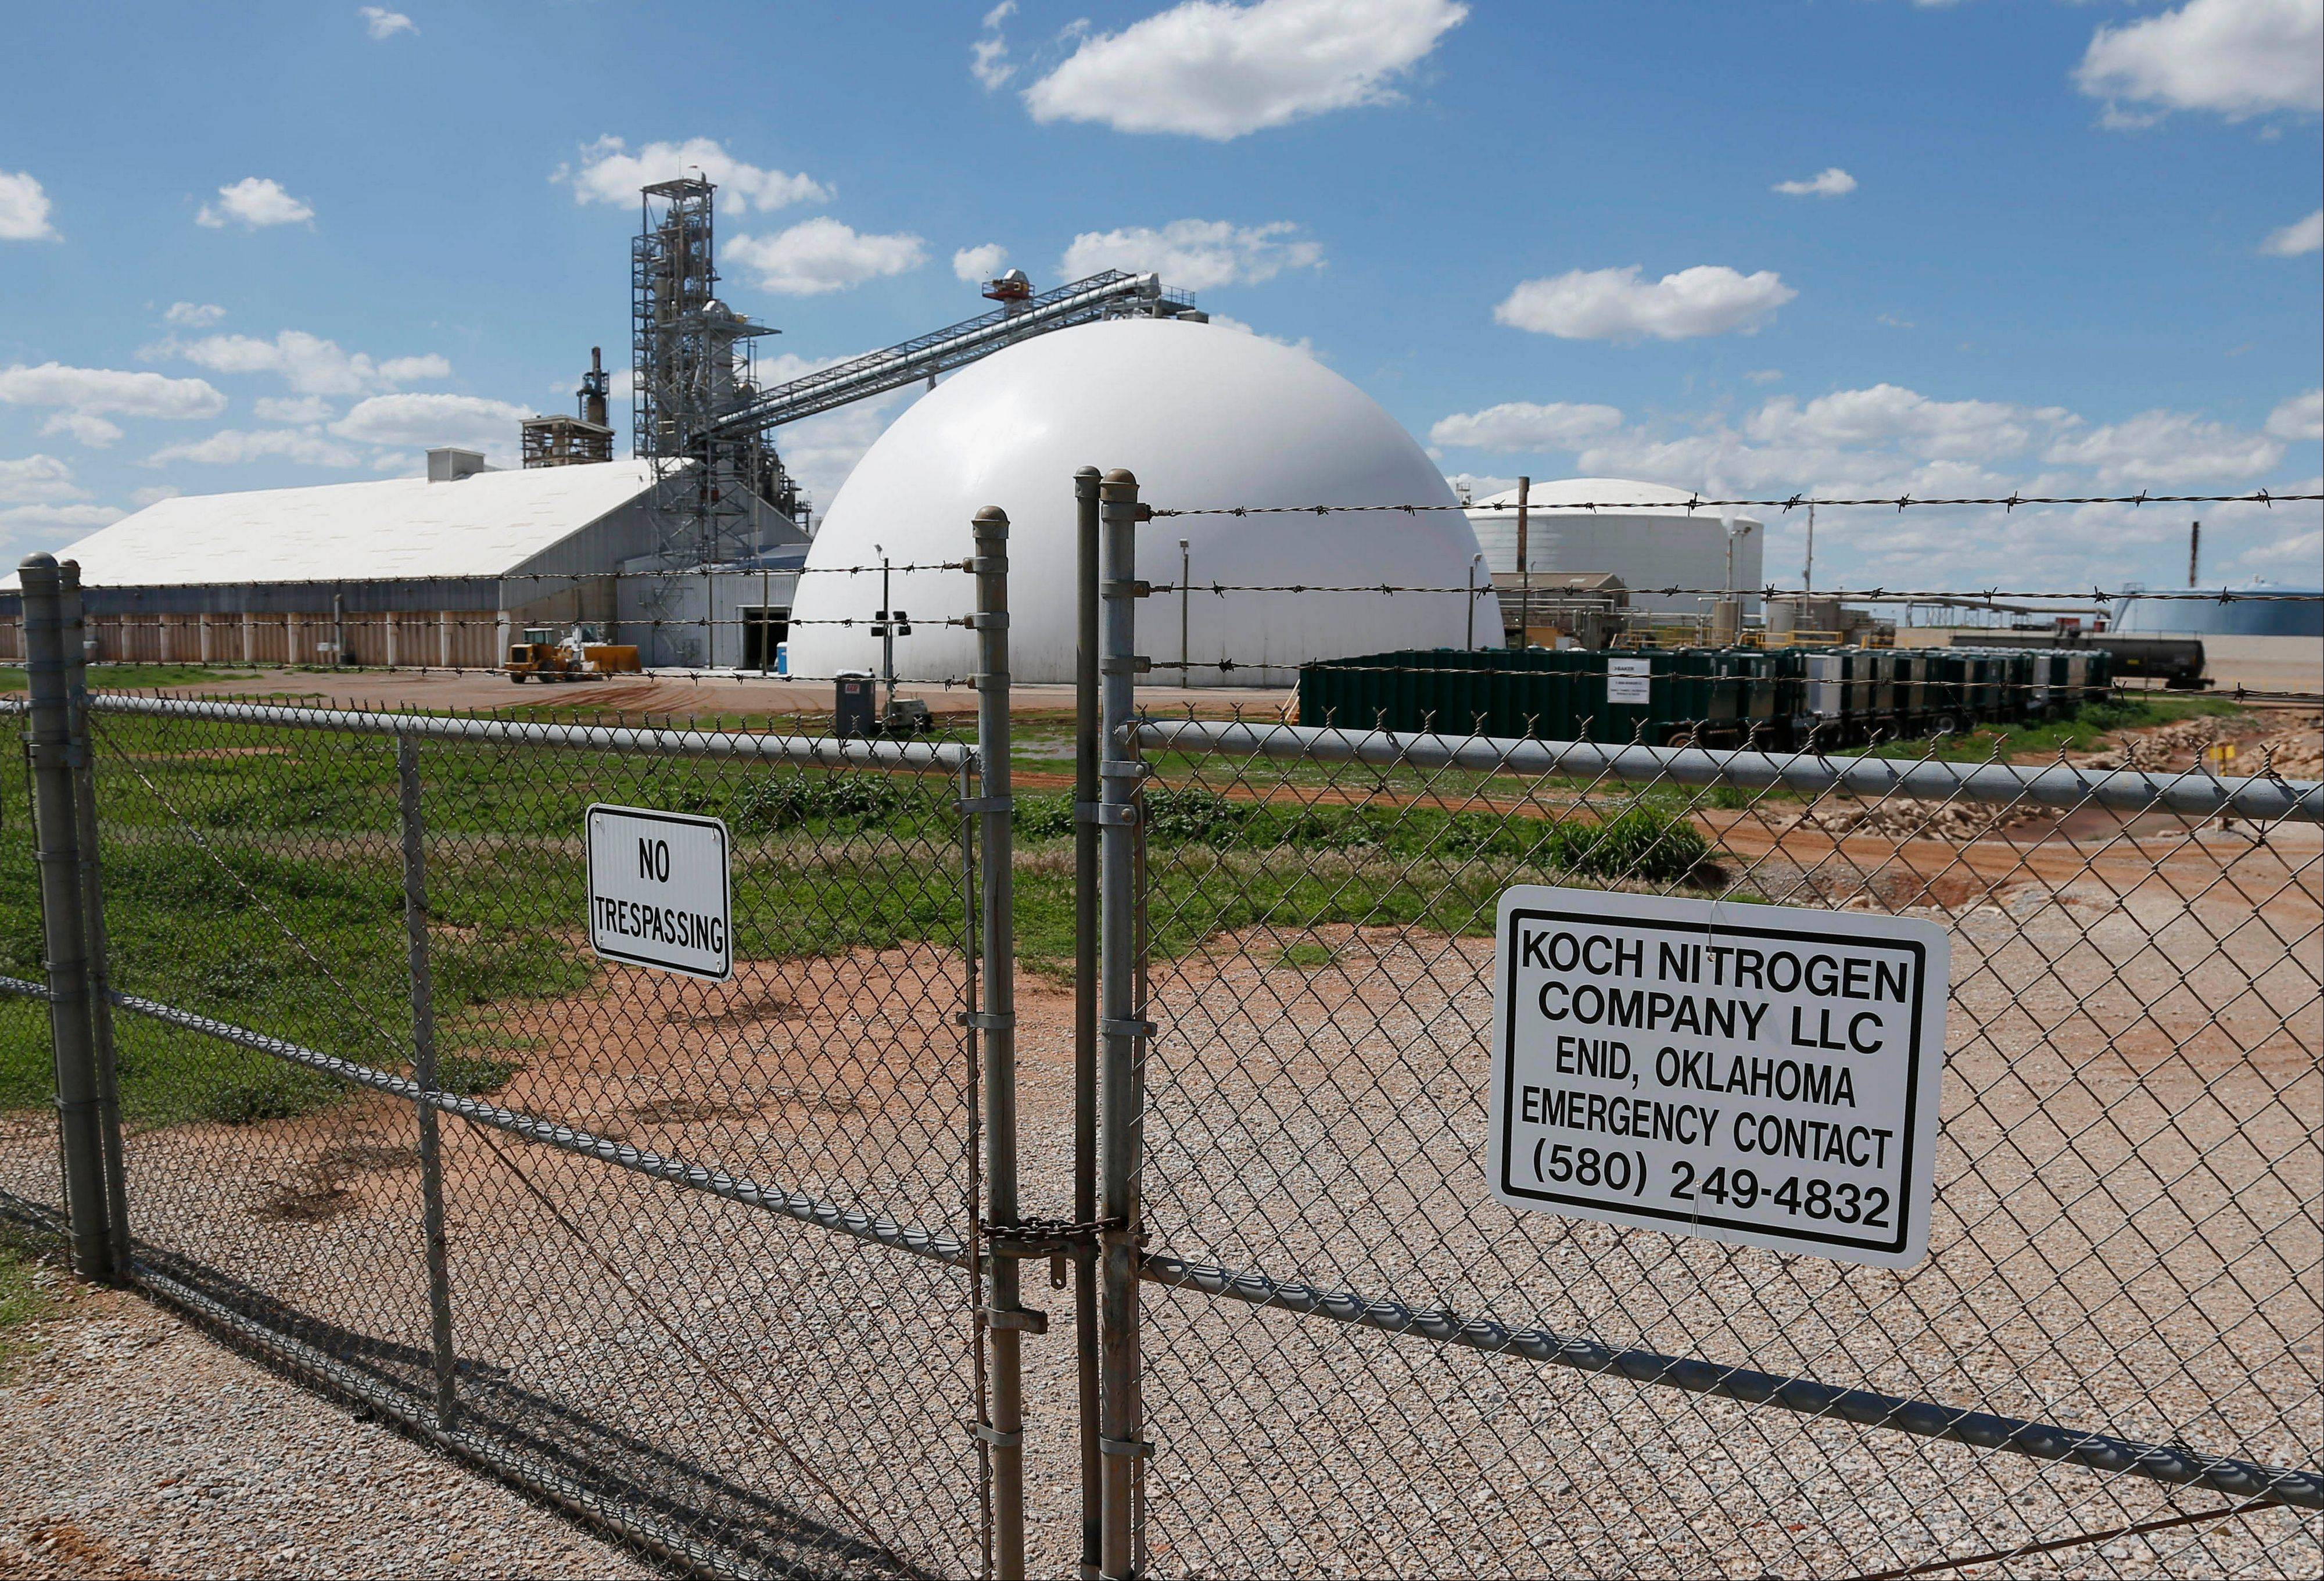 The Koch Nitrogen Company in Enid, Okla., plans to add a new fertilizer production plant at this facility, part of a wave of new fertilizer plant construction and expansion being proposed across the United States.